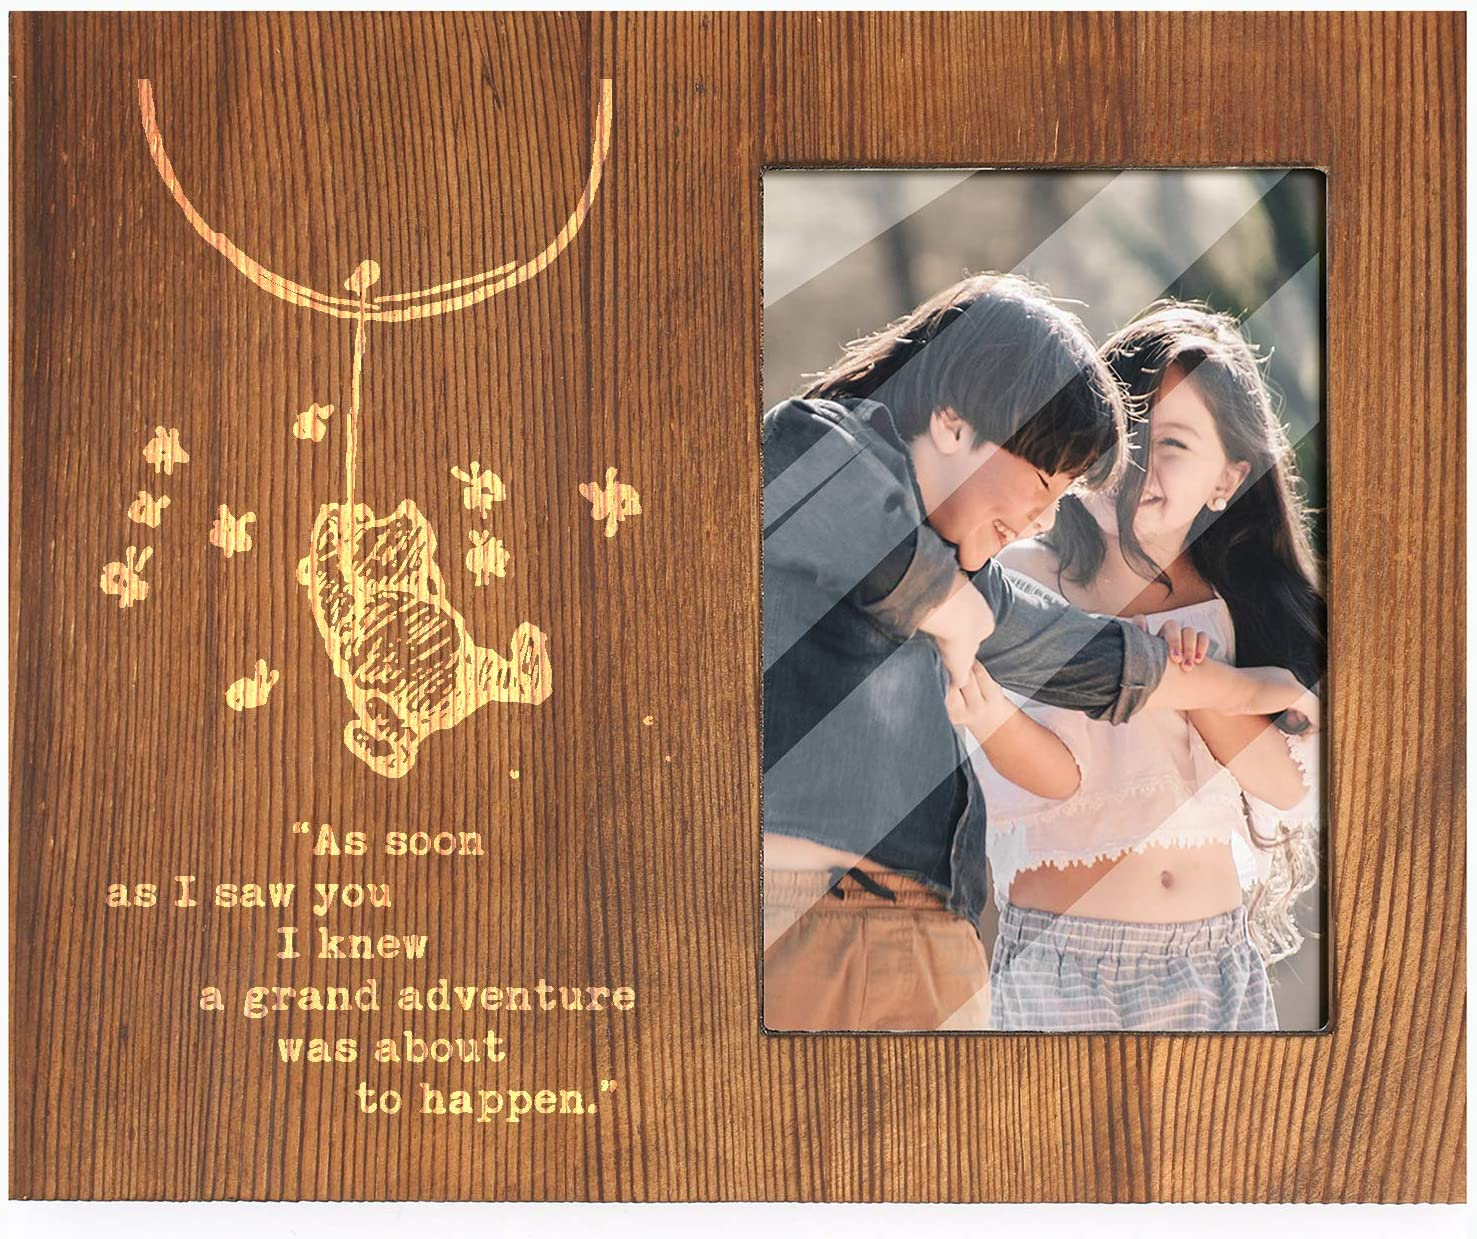 Ku-dayi As Soon As I Saw You-Inspirational Winnie The Pooh Quotes -Friends Expressions Picture Photo Frame -Best Friendship Gifts for Friends, Sisters